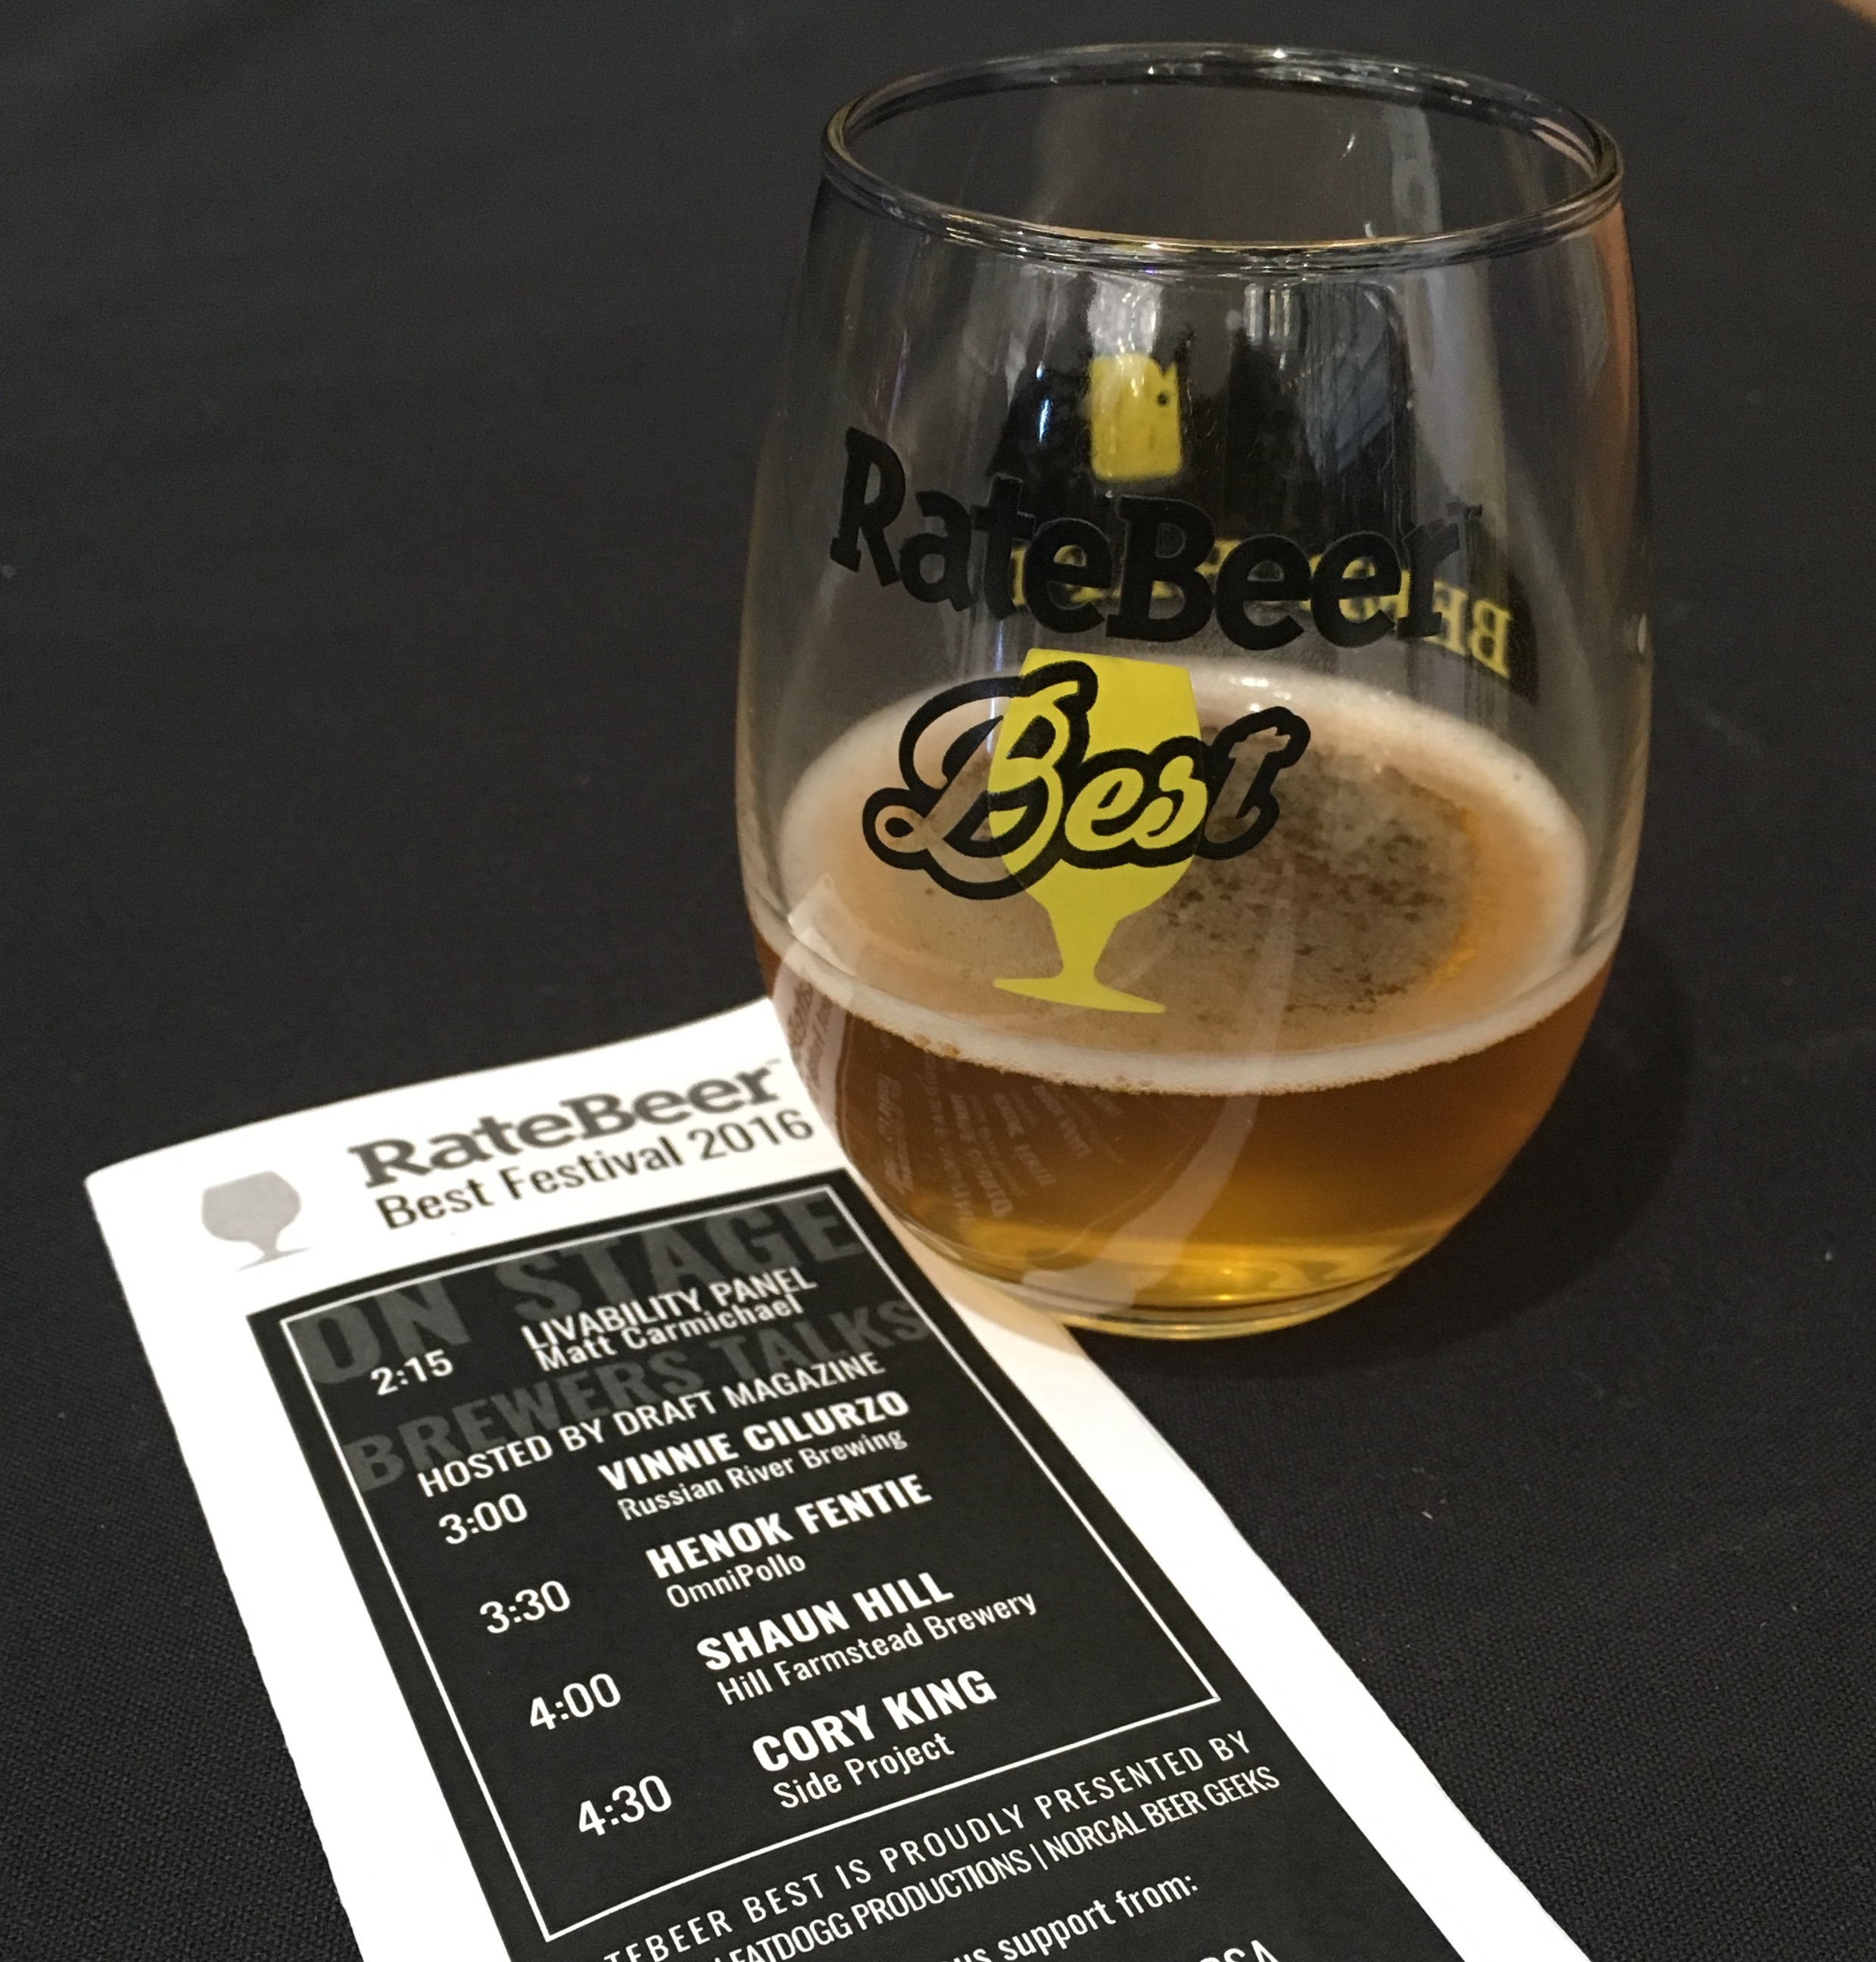 2016 RateBeer Best Festival glass pour and program.